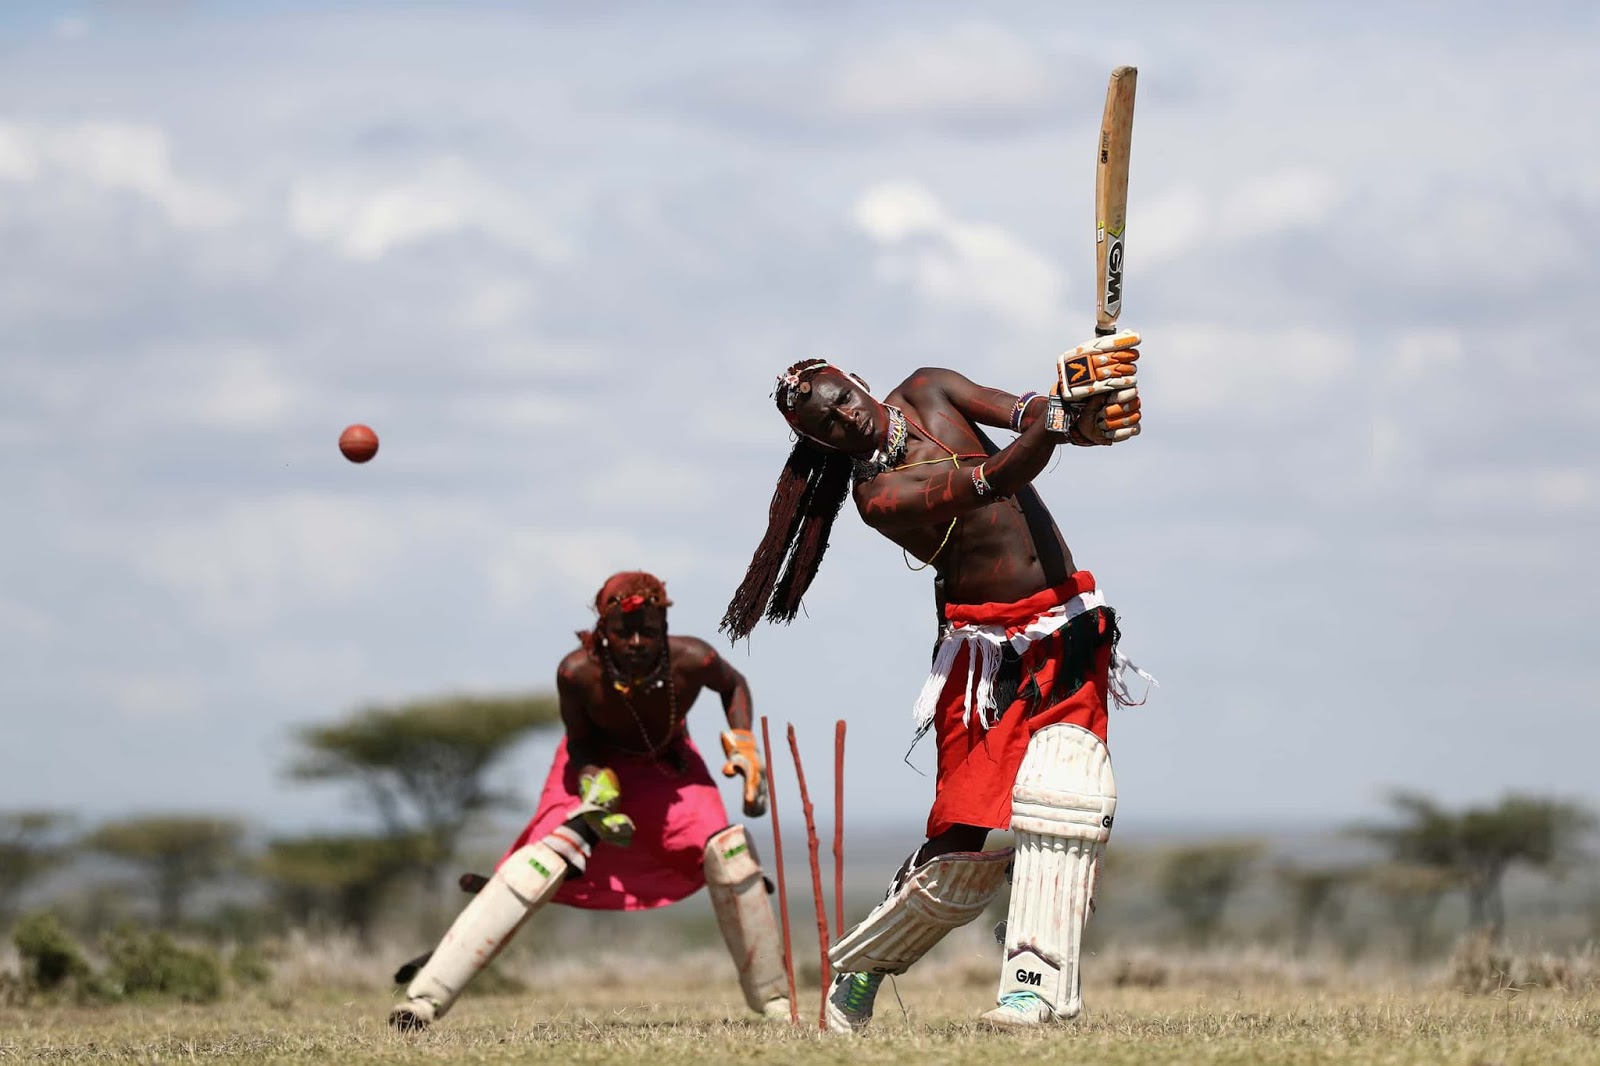 25 Of The Most Intriguing Pictures Of 2017 - Maasai Cricket Warriors